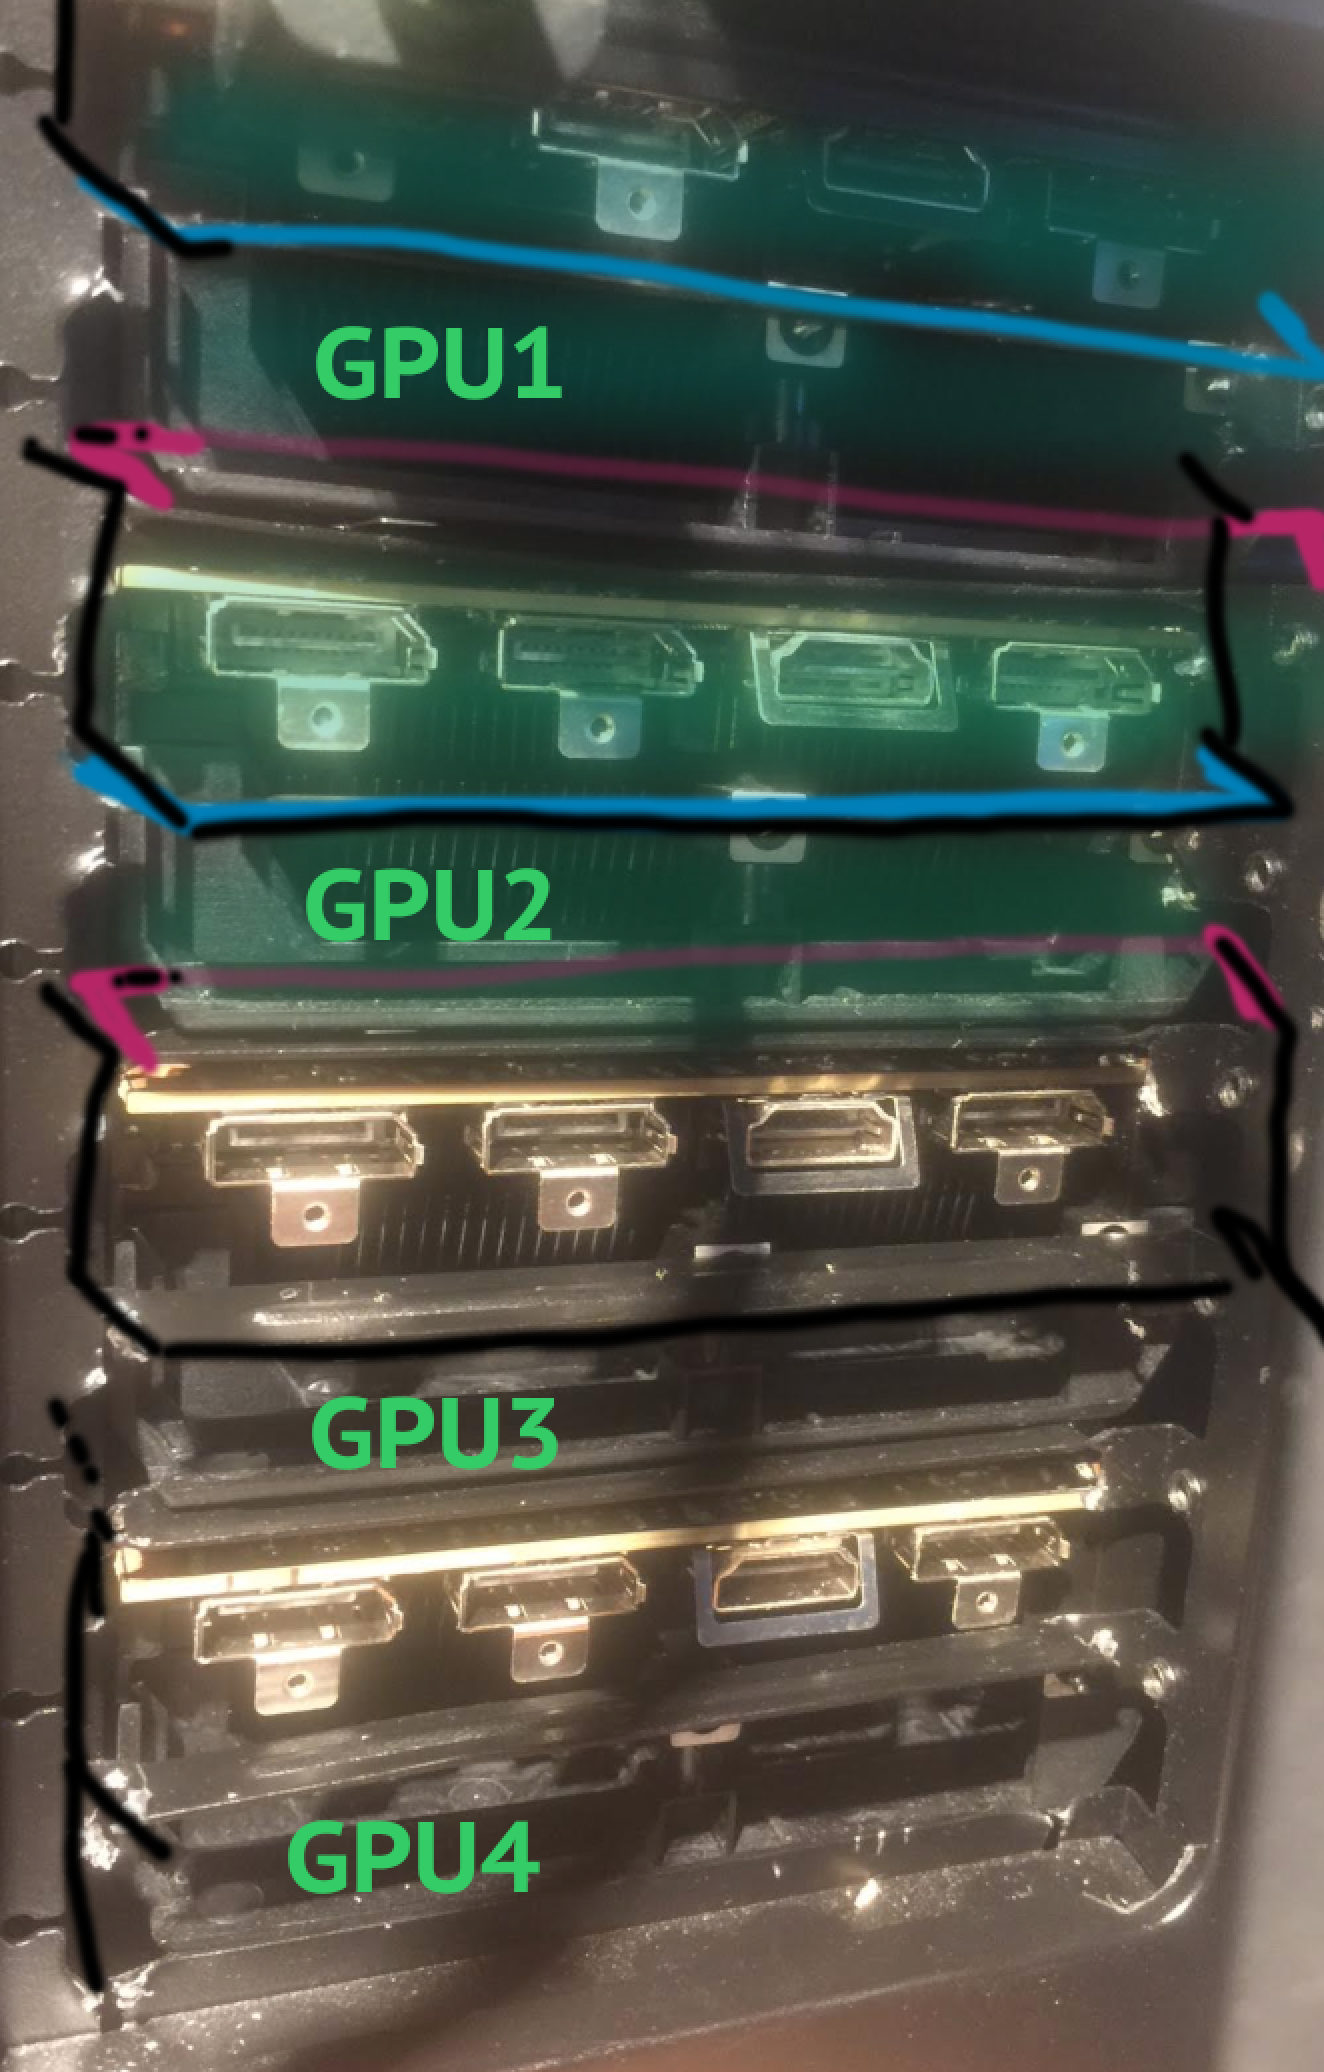 Asus I Need Tr4 7x16 Pcie Motherboards An Multi Core X8 4x Super Fans Upto 17 Deepcool Notebook Cooler The Reason Mention Show Little Gpu Bracket Tweaks Above Is Simple It Allows You To Run 1080tis With Stock Blower At Full Load